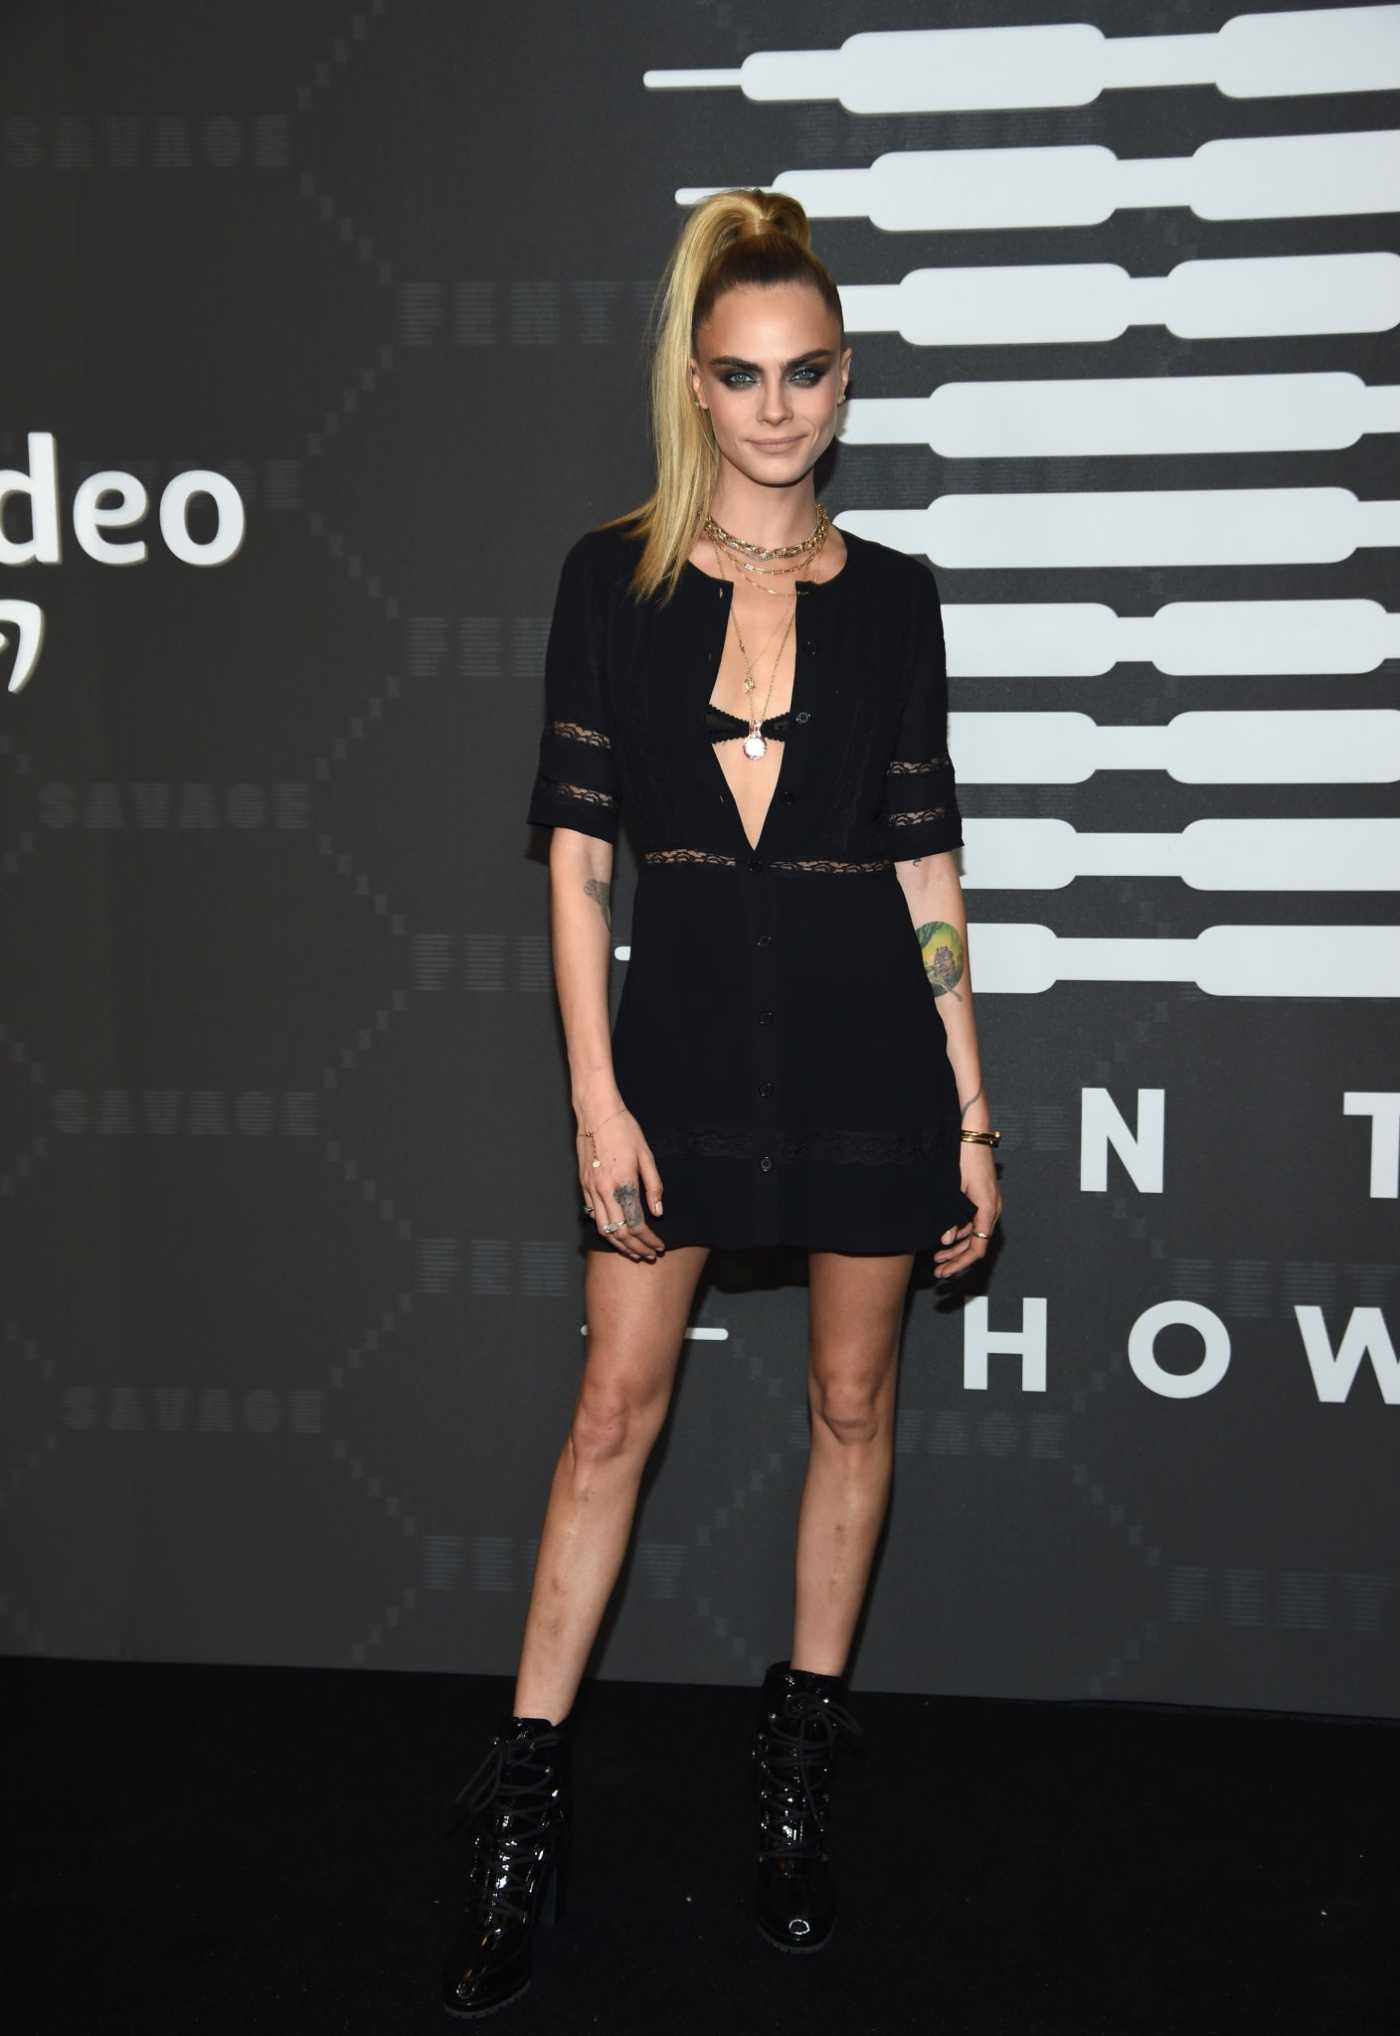 Cara Delevingne Attends Savage x Fenty Show in Brooklyn, New York 09/10/2019